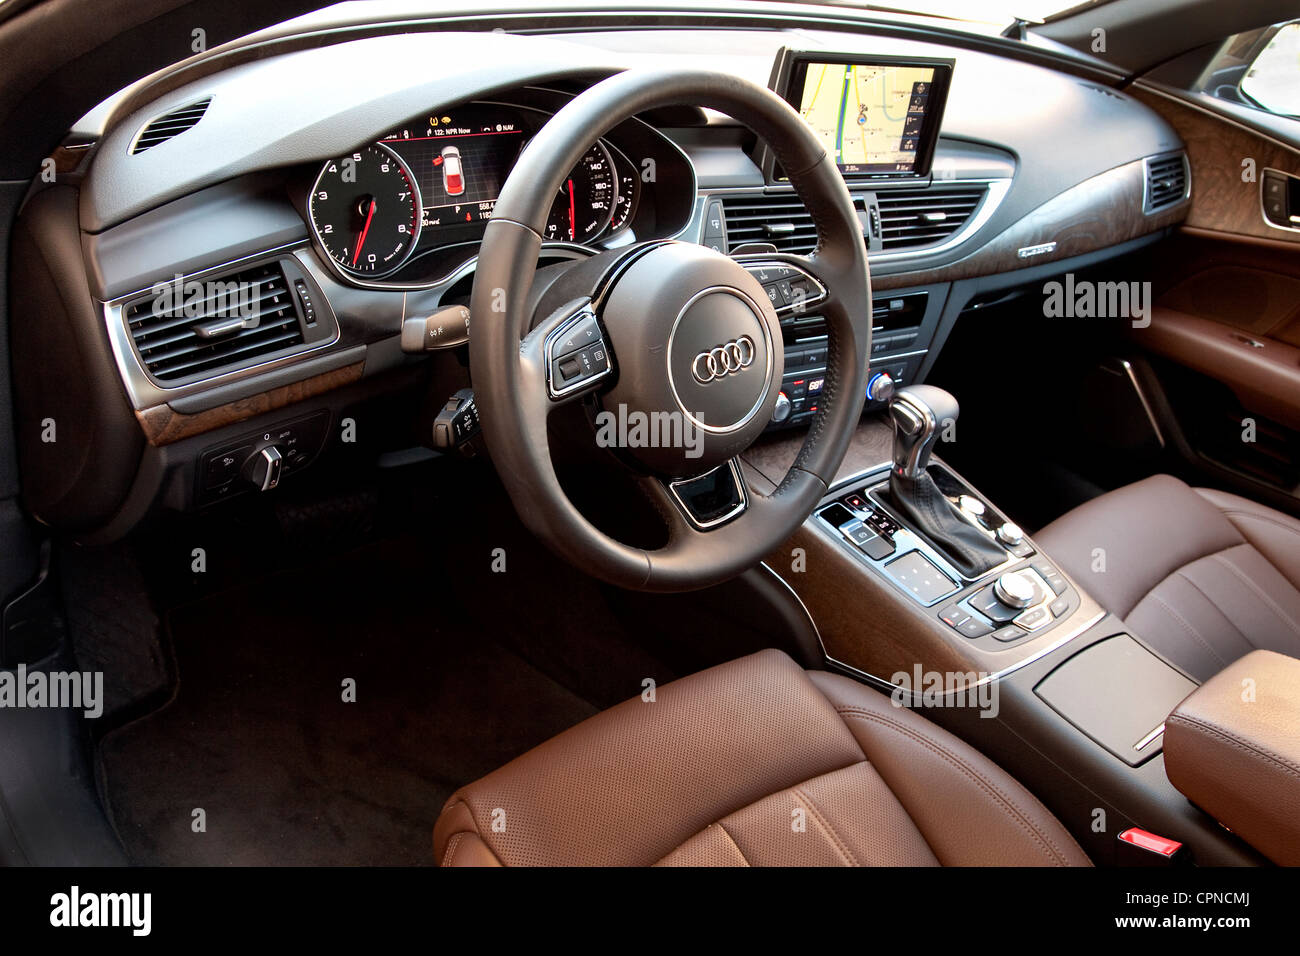 Audi A7  front of car interior - Stock Image